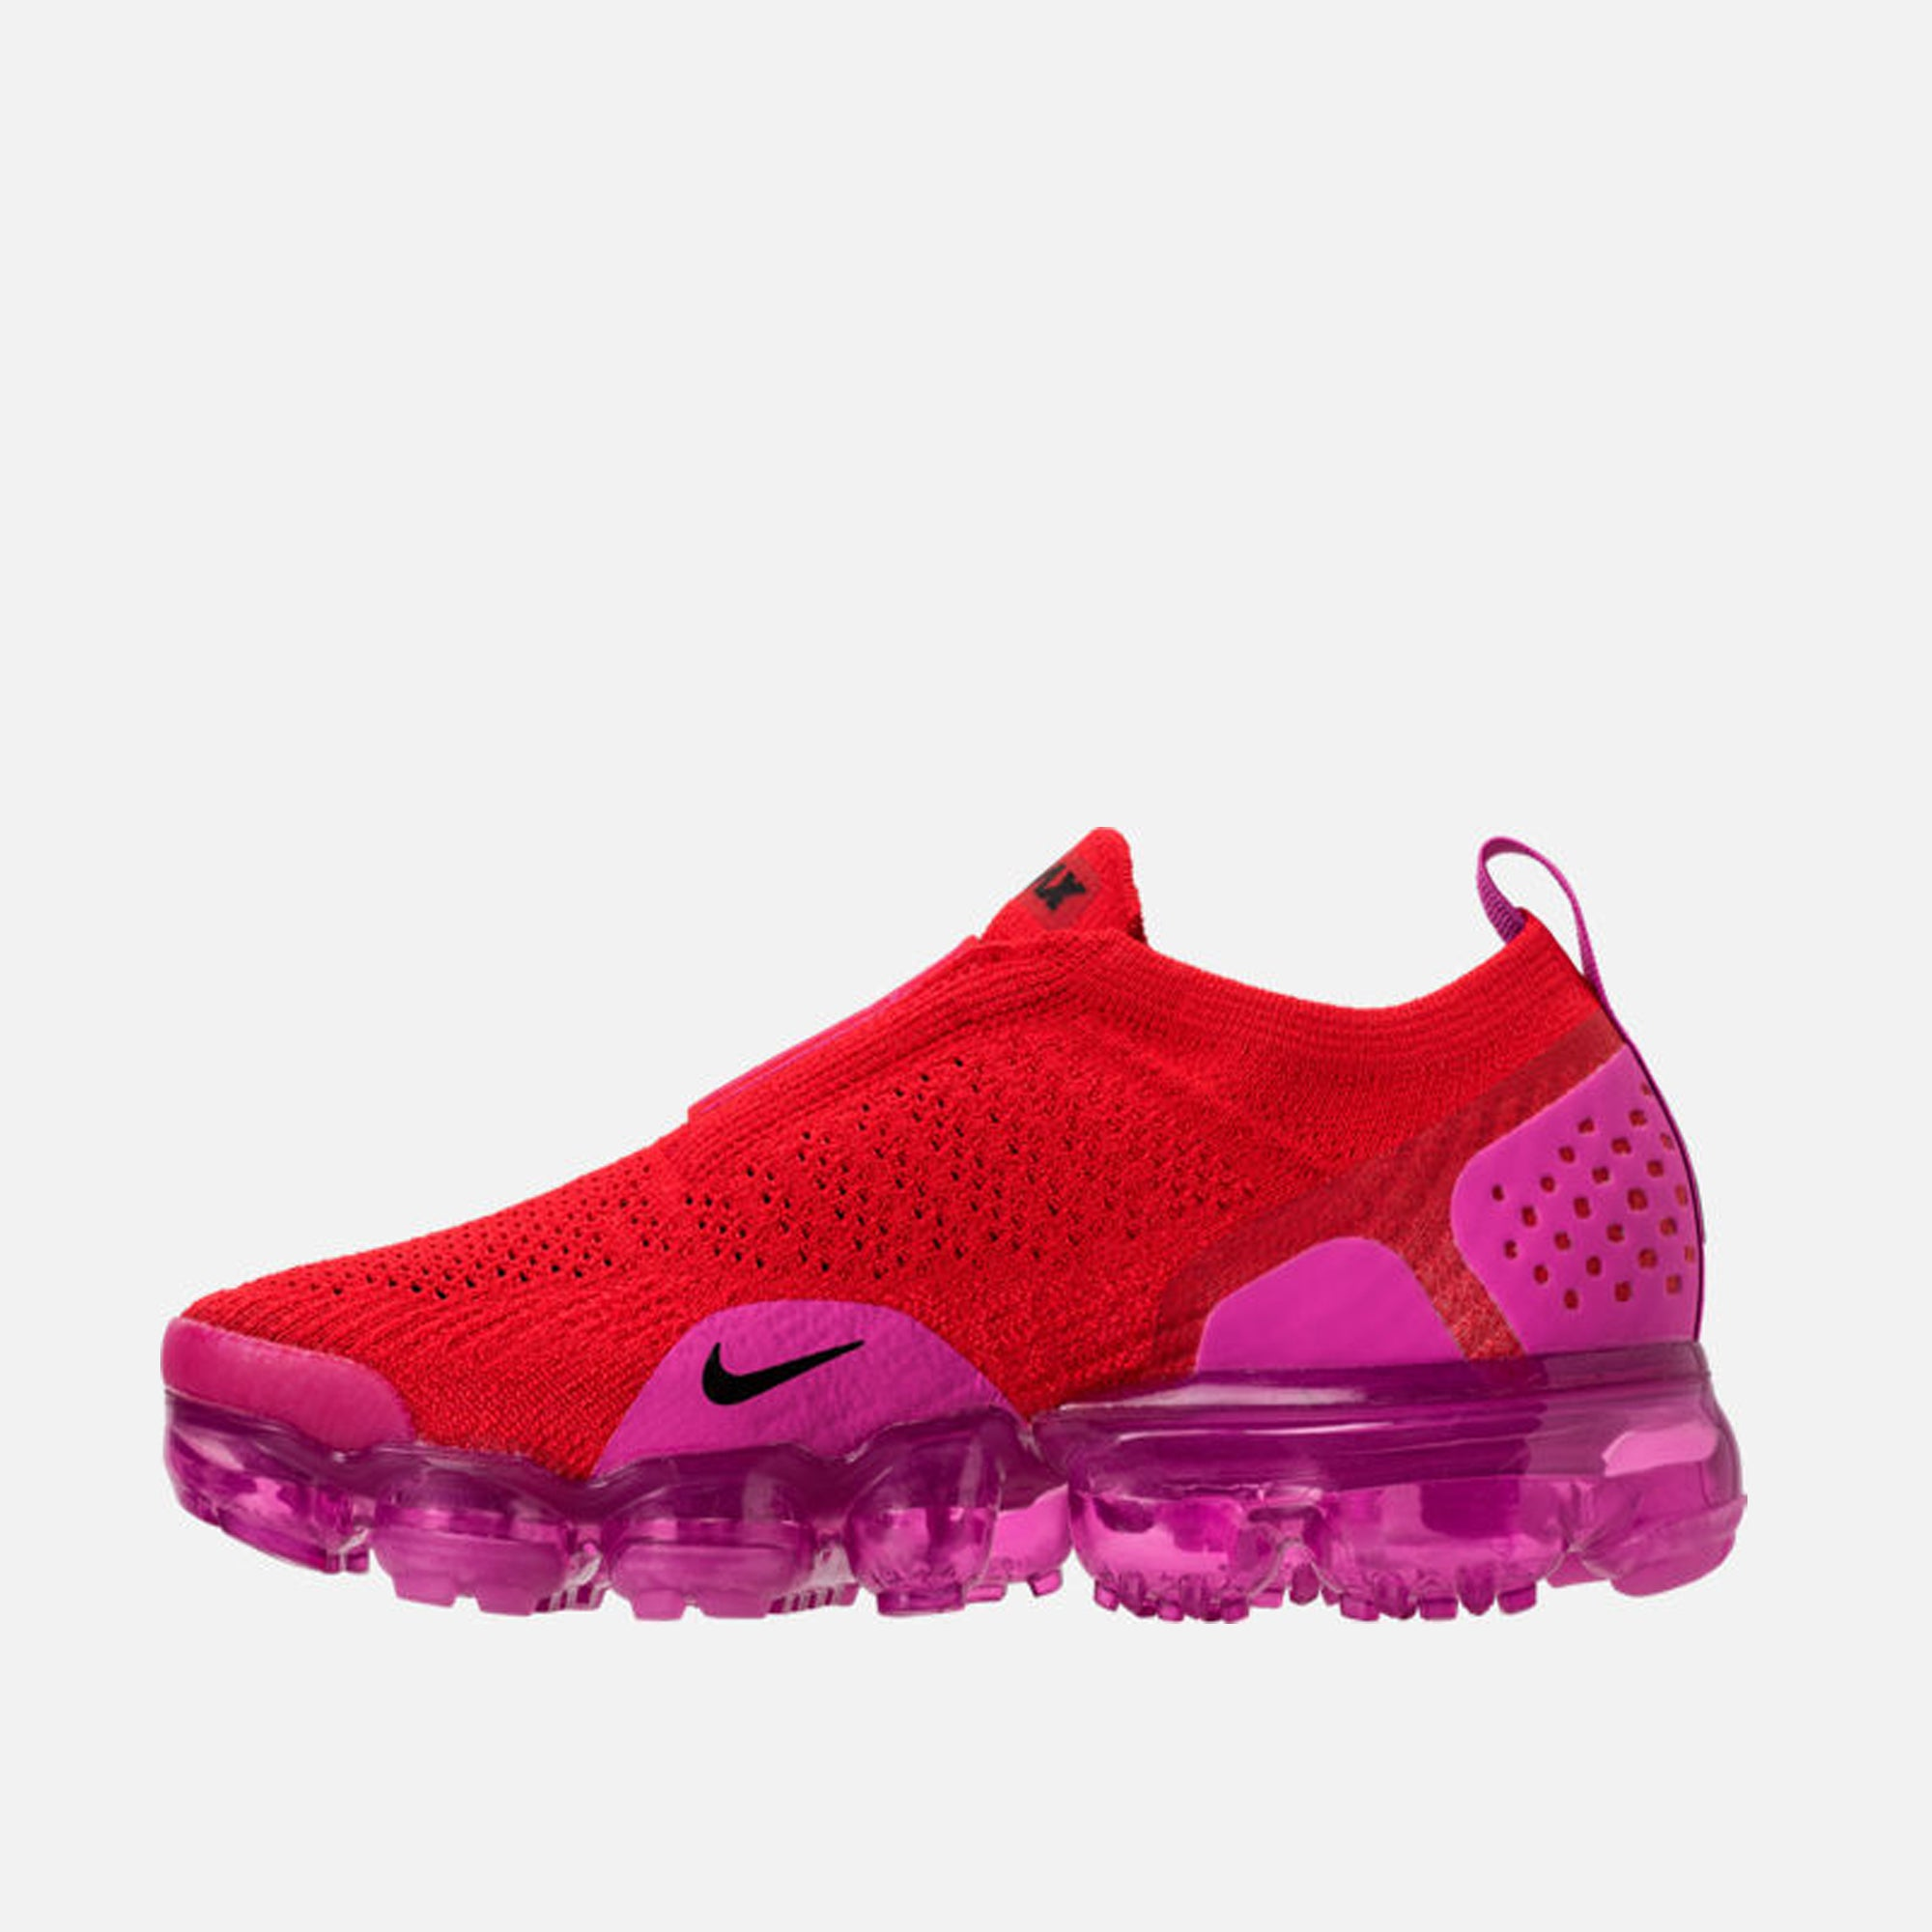 47a26b7201 ... sweden womens nike air vapormax flyknit moc running shoes university  red pzozo 4d5fe 0f936